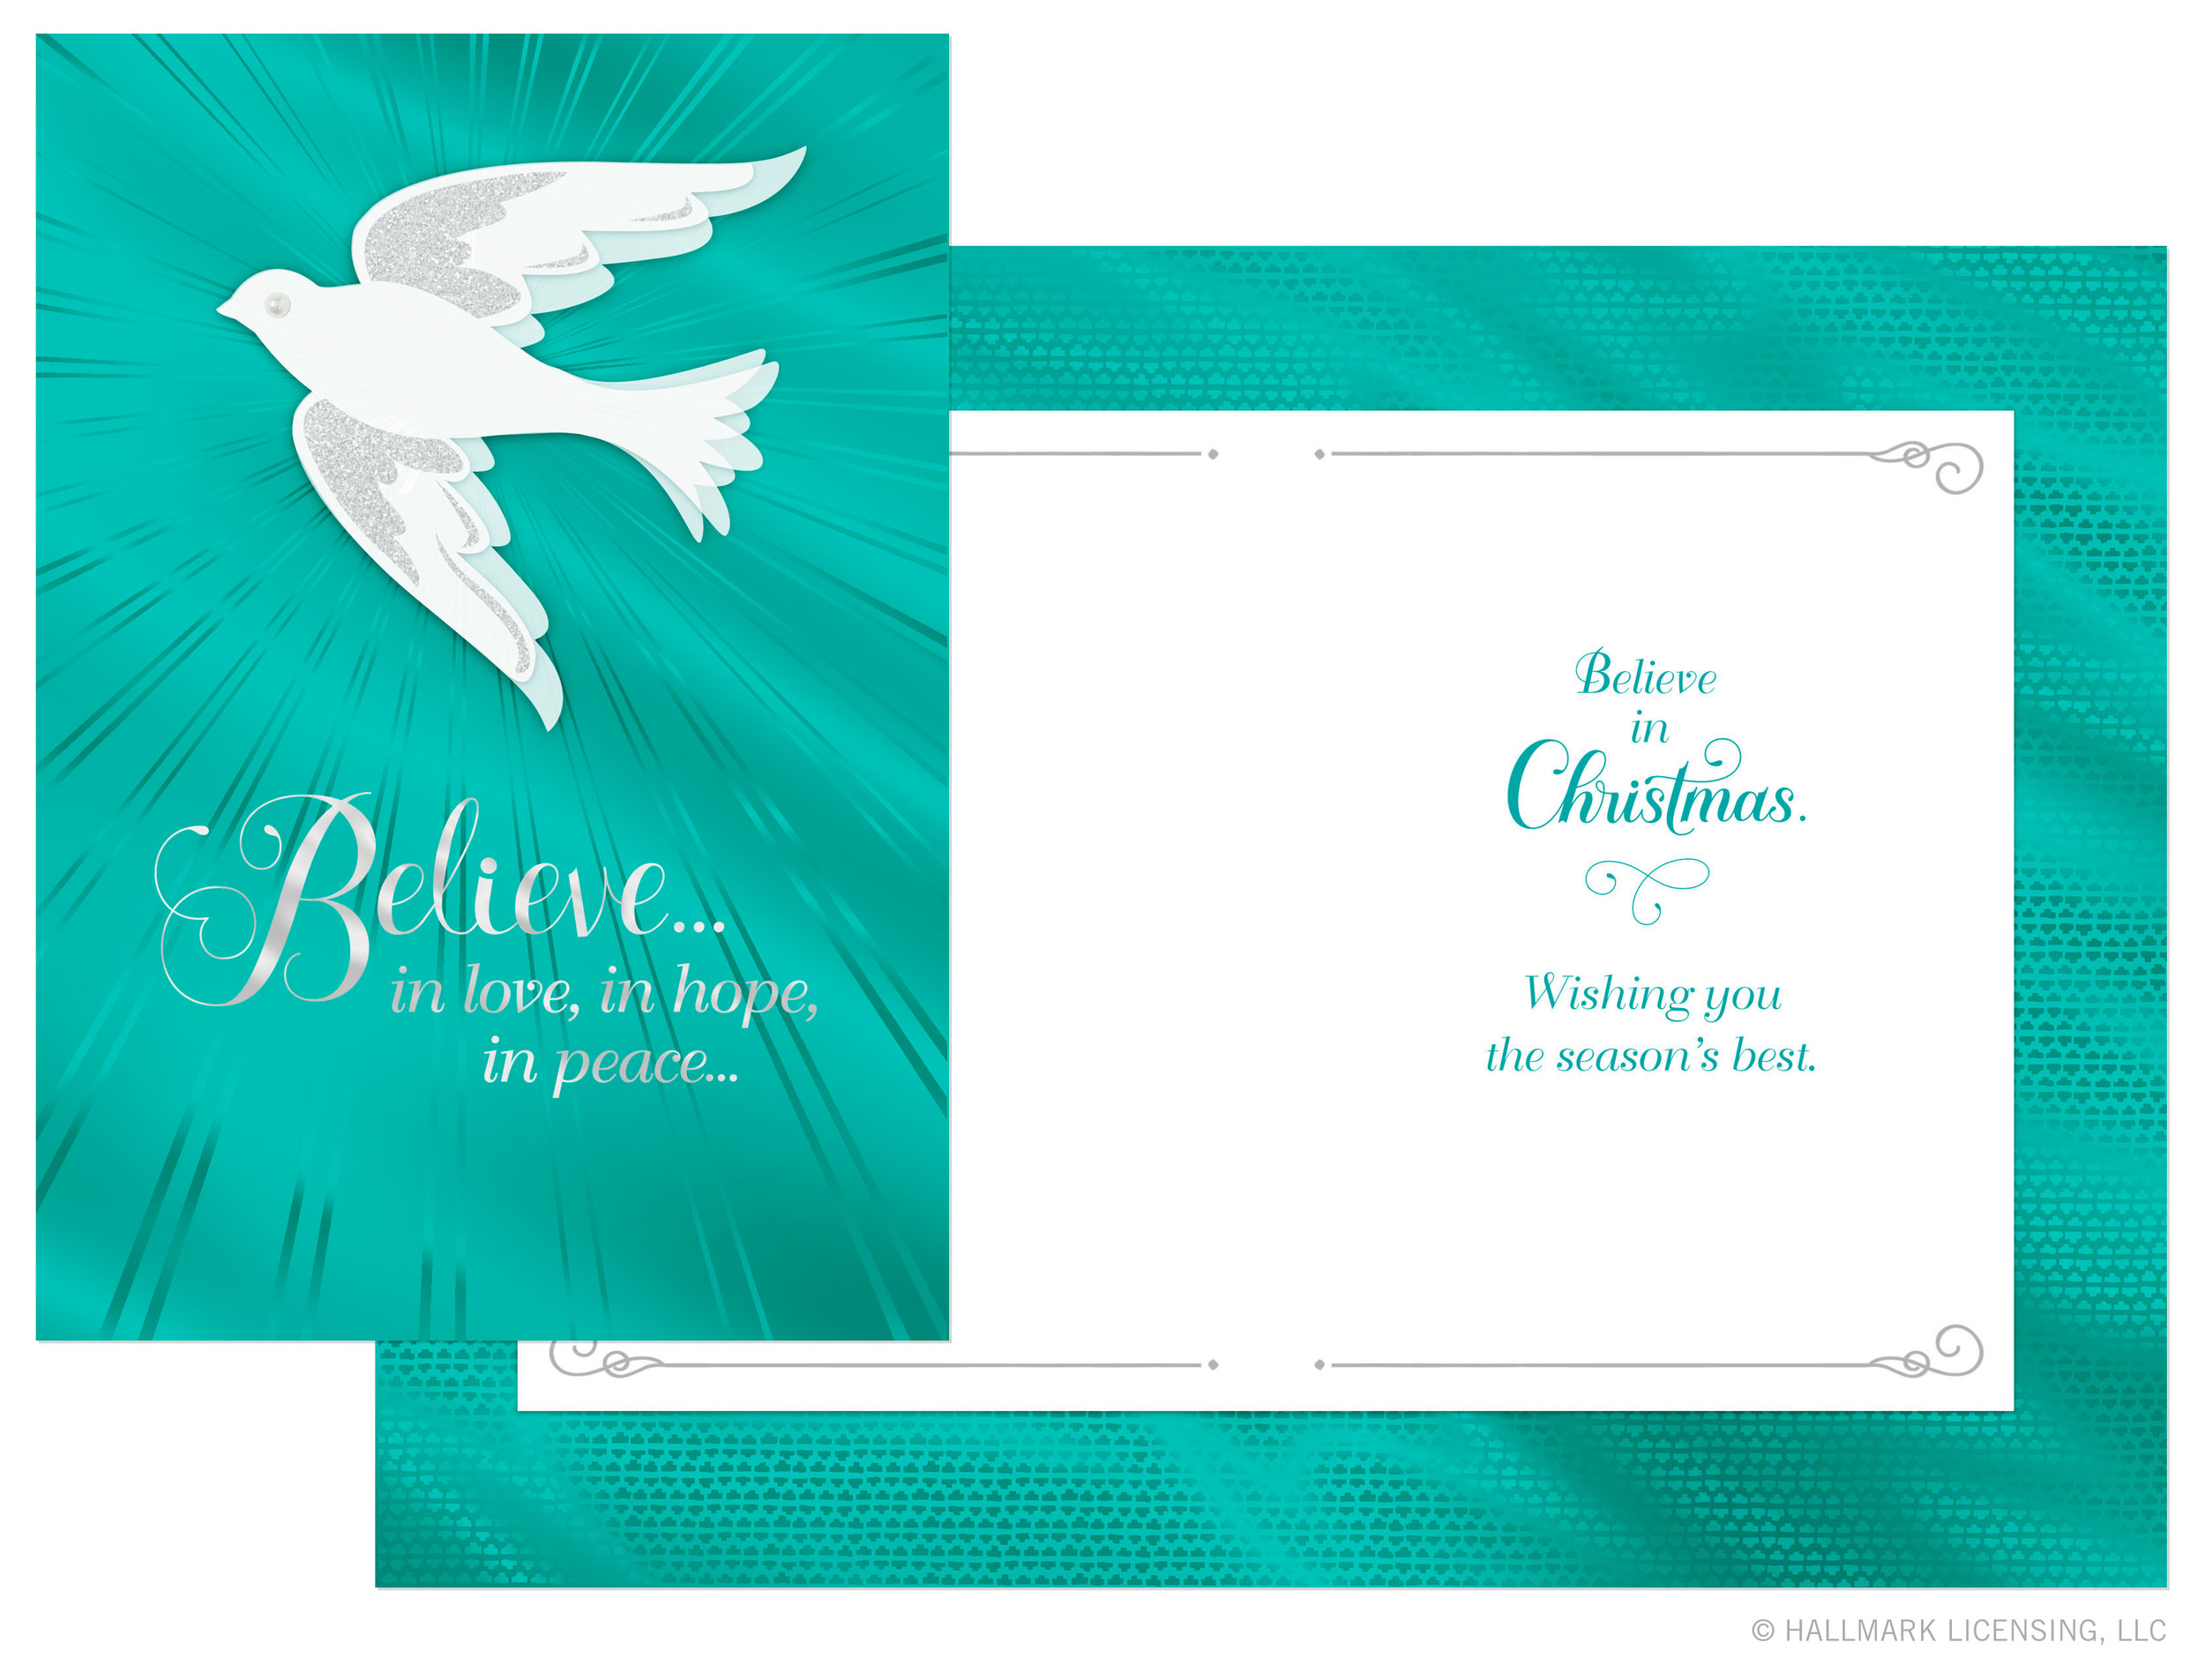 Letters Are Lovely | Christmas Cards for Hallmark: Part Two